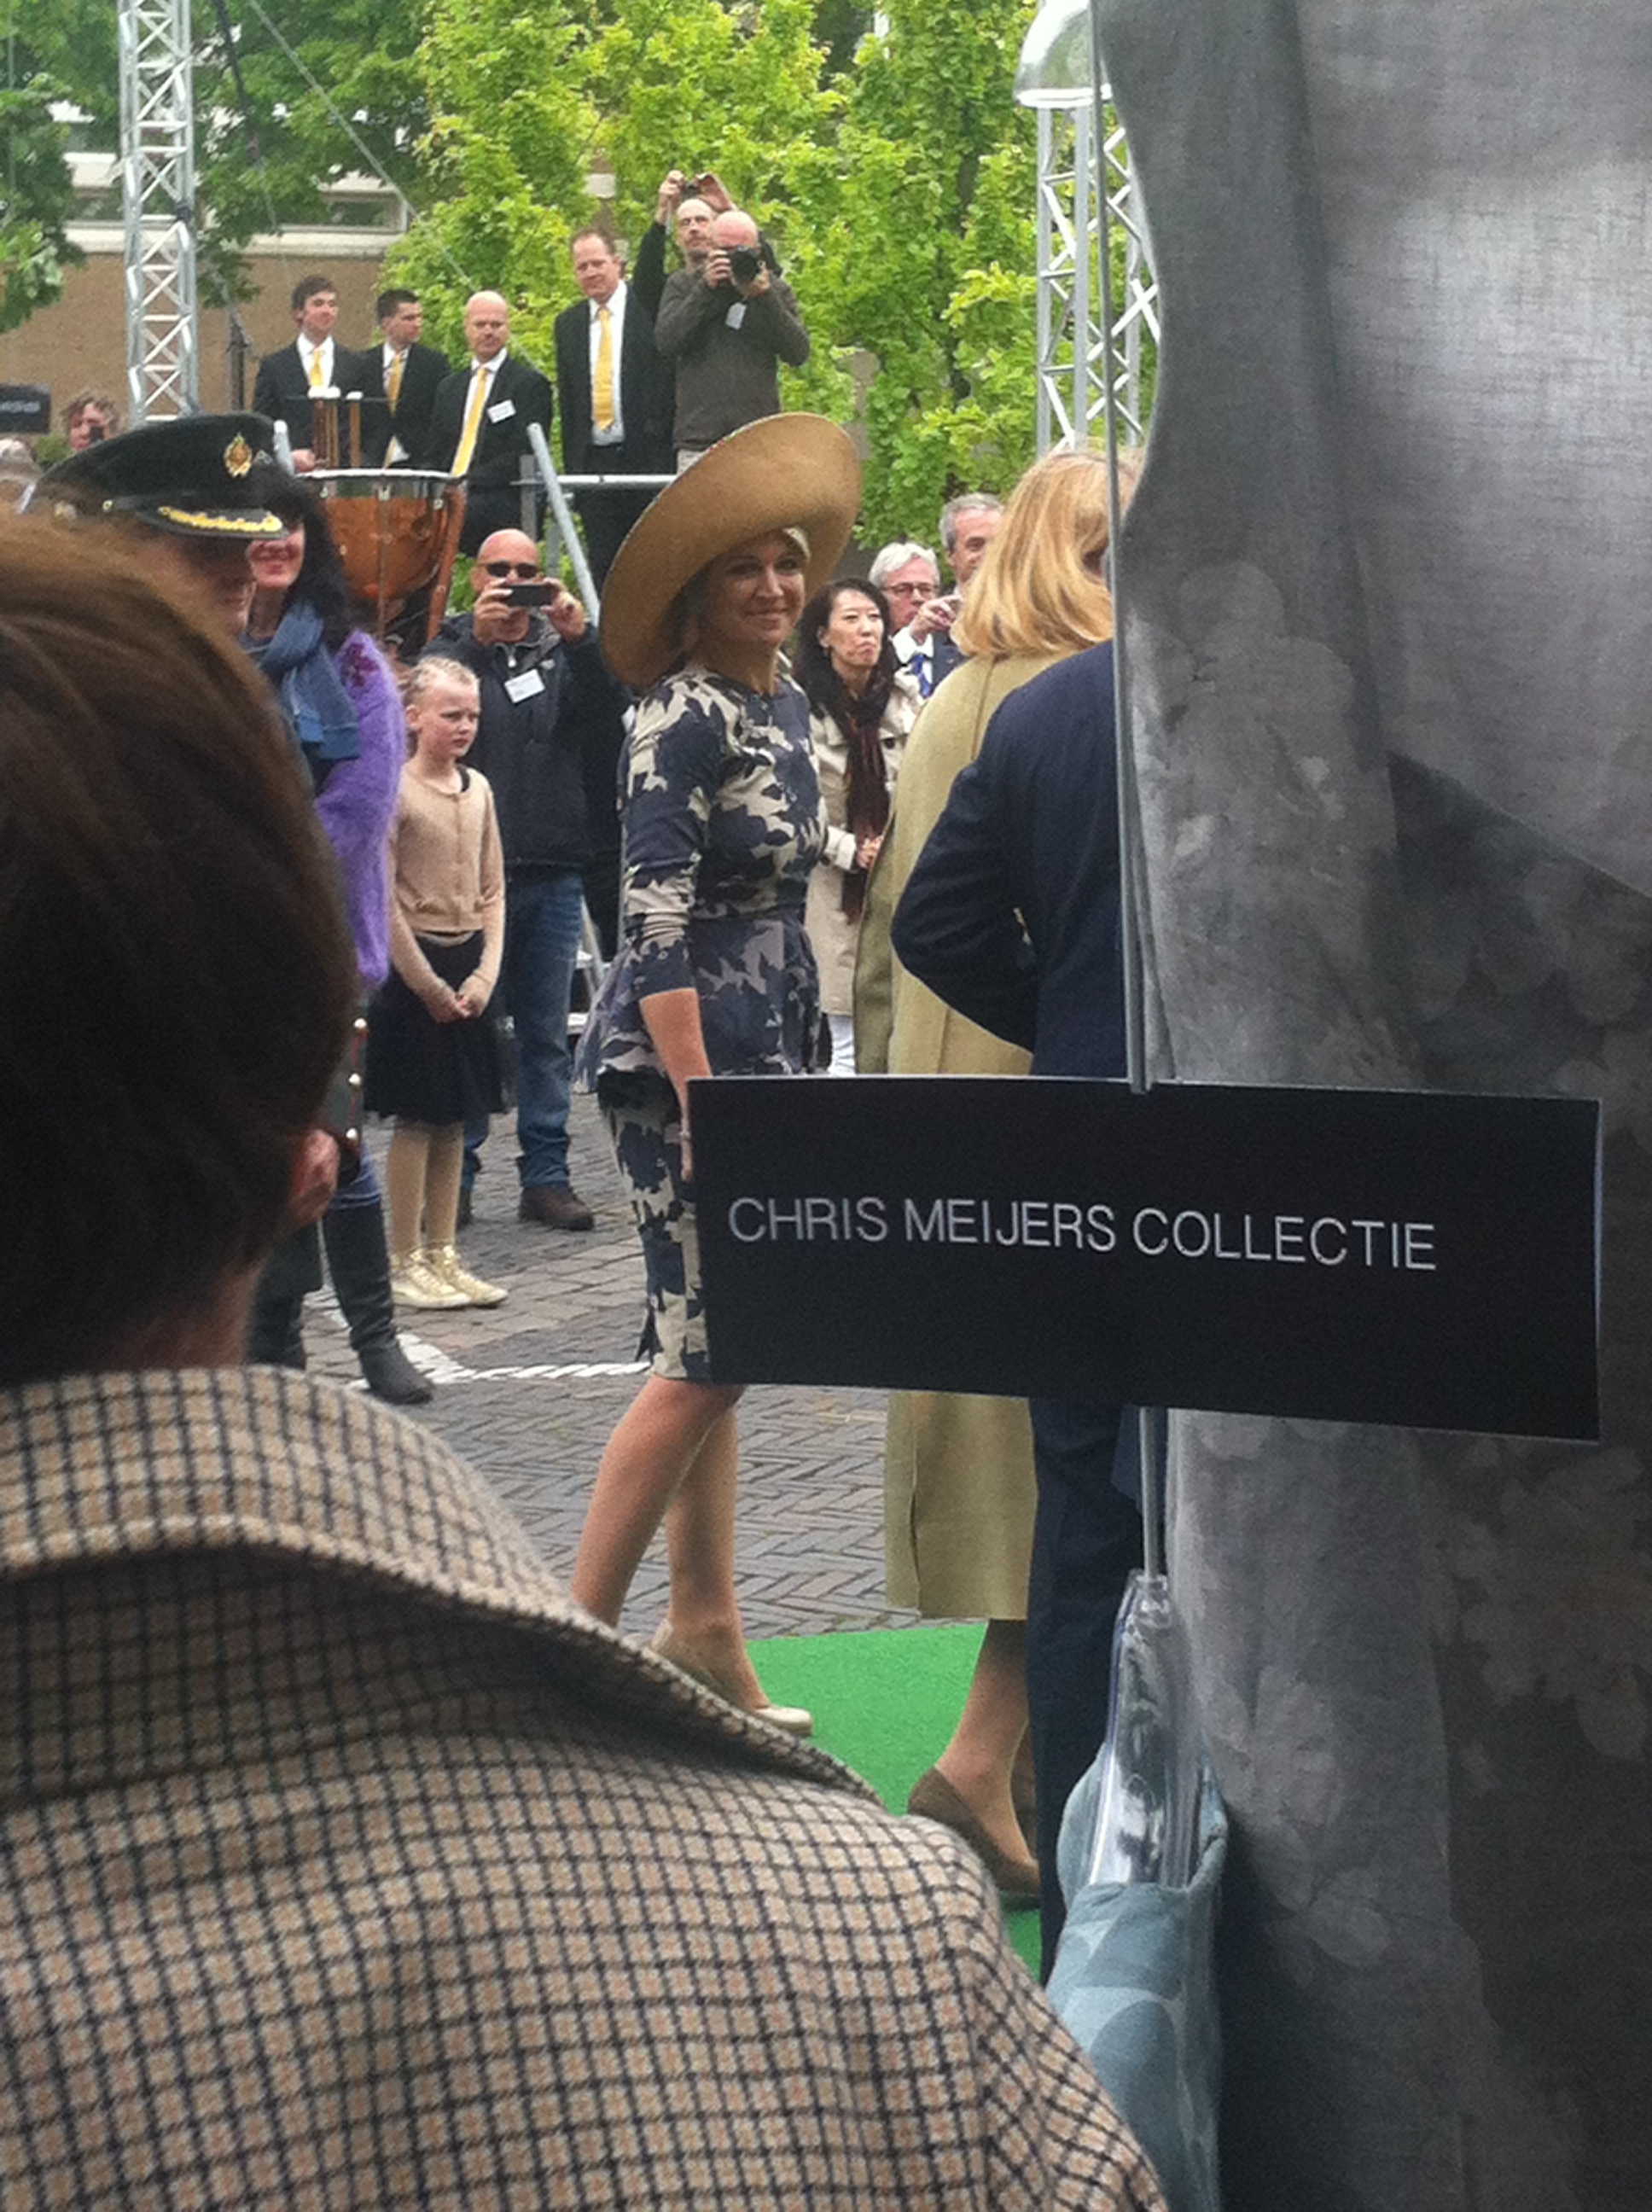 Chris Meijers Collectie - Maxima!